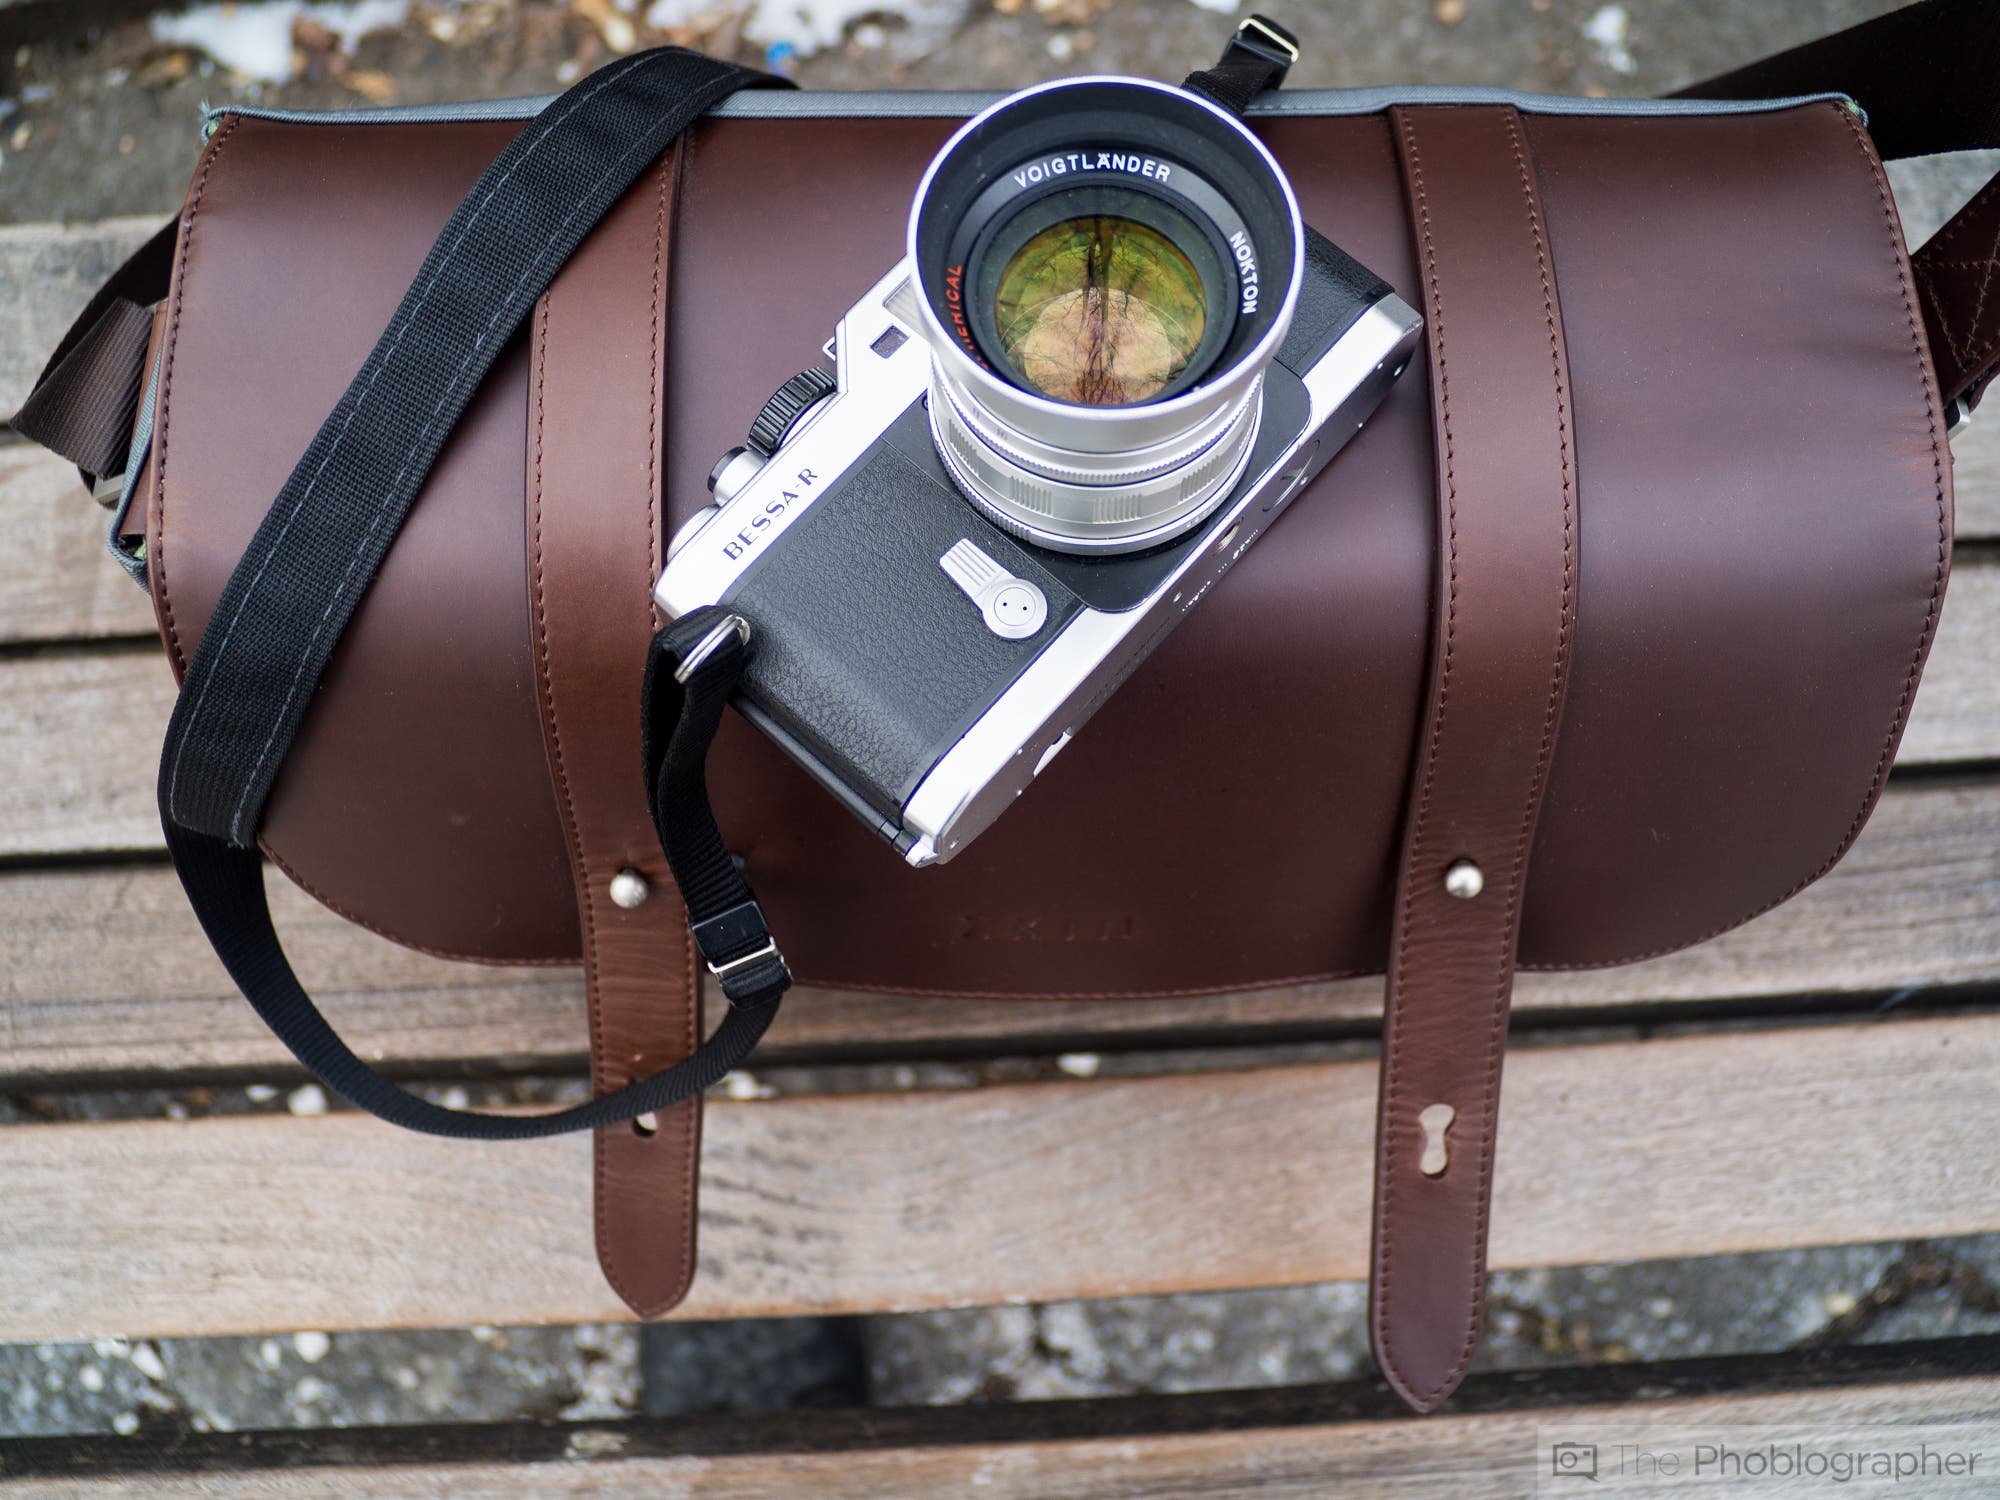 e5594e00c659 Review  Zkin Champ Camera Bag - The Phoblographer